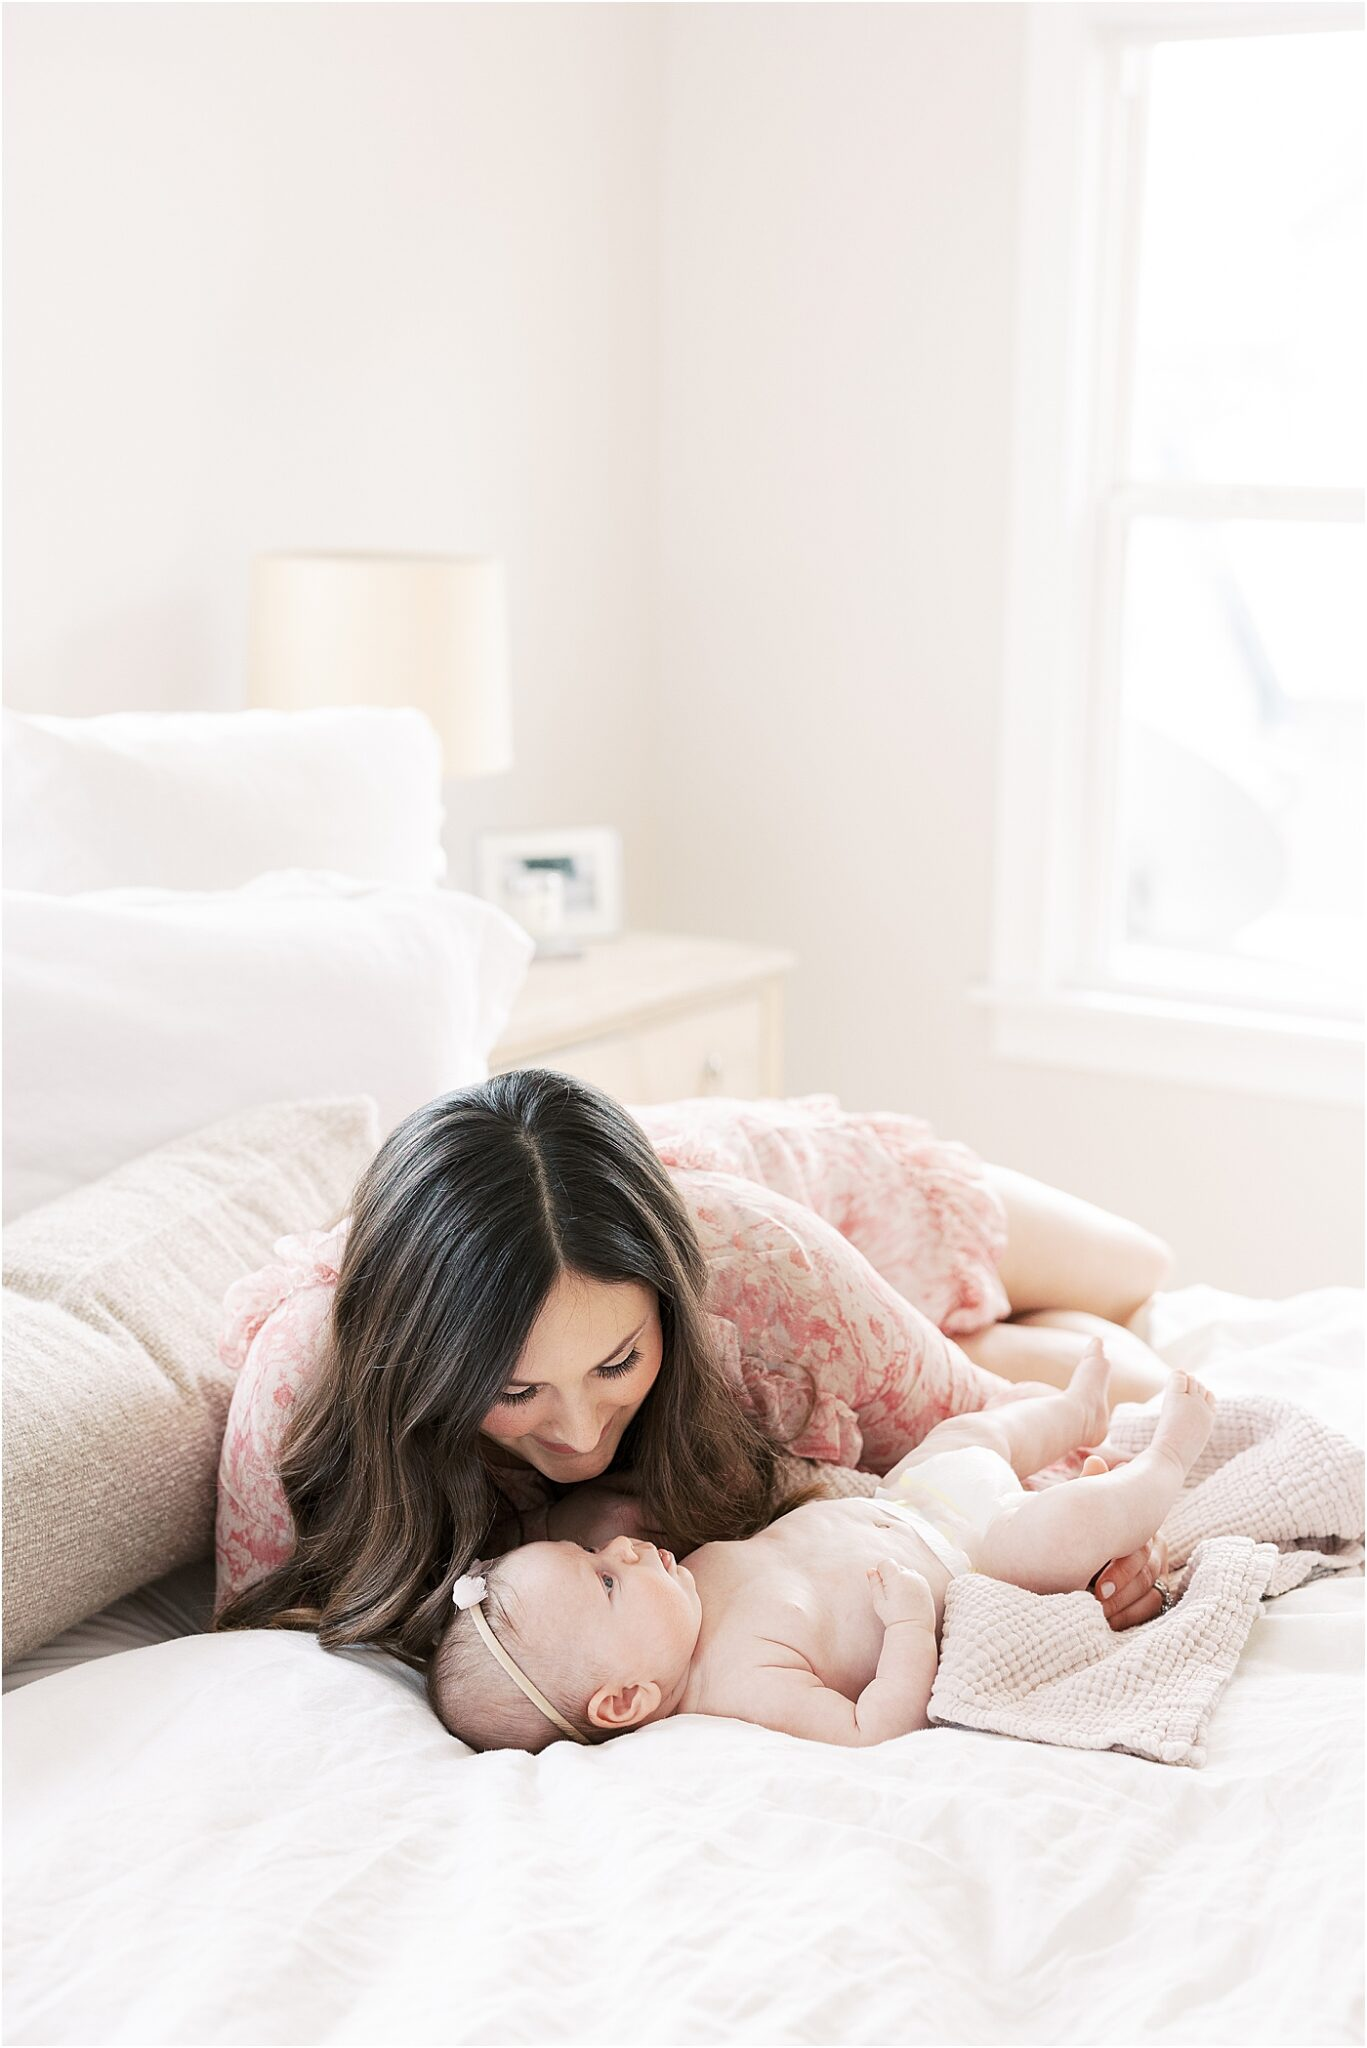 Baby girl laying awake on bed while Mom looks over her. Photo by Lindsay Konopa Photography.